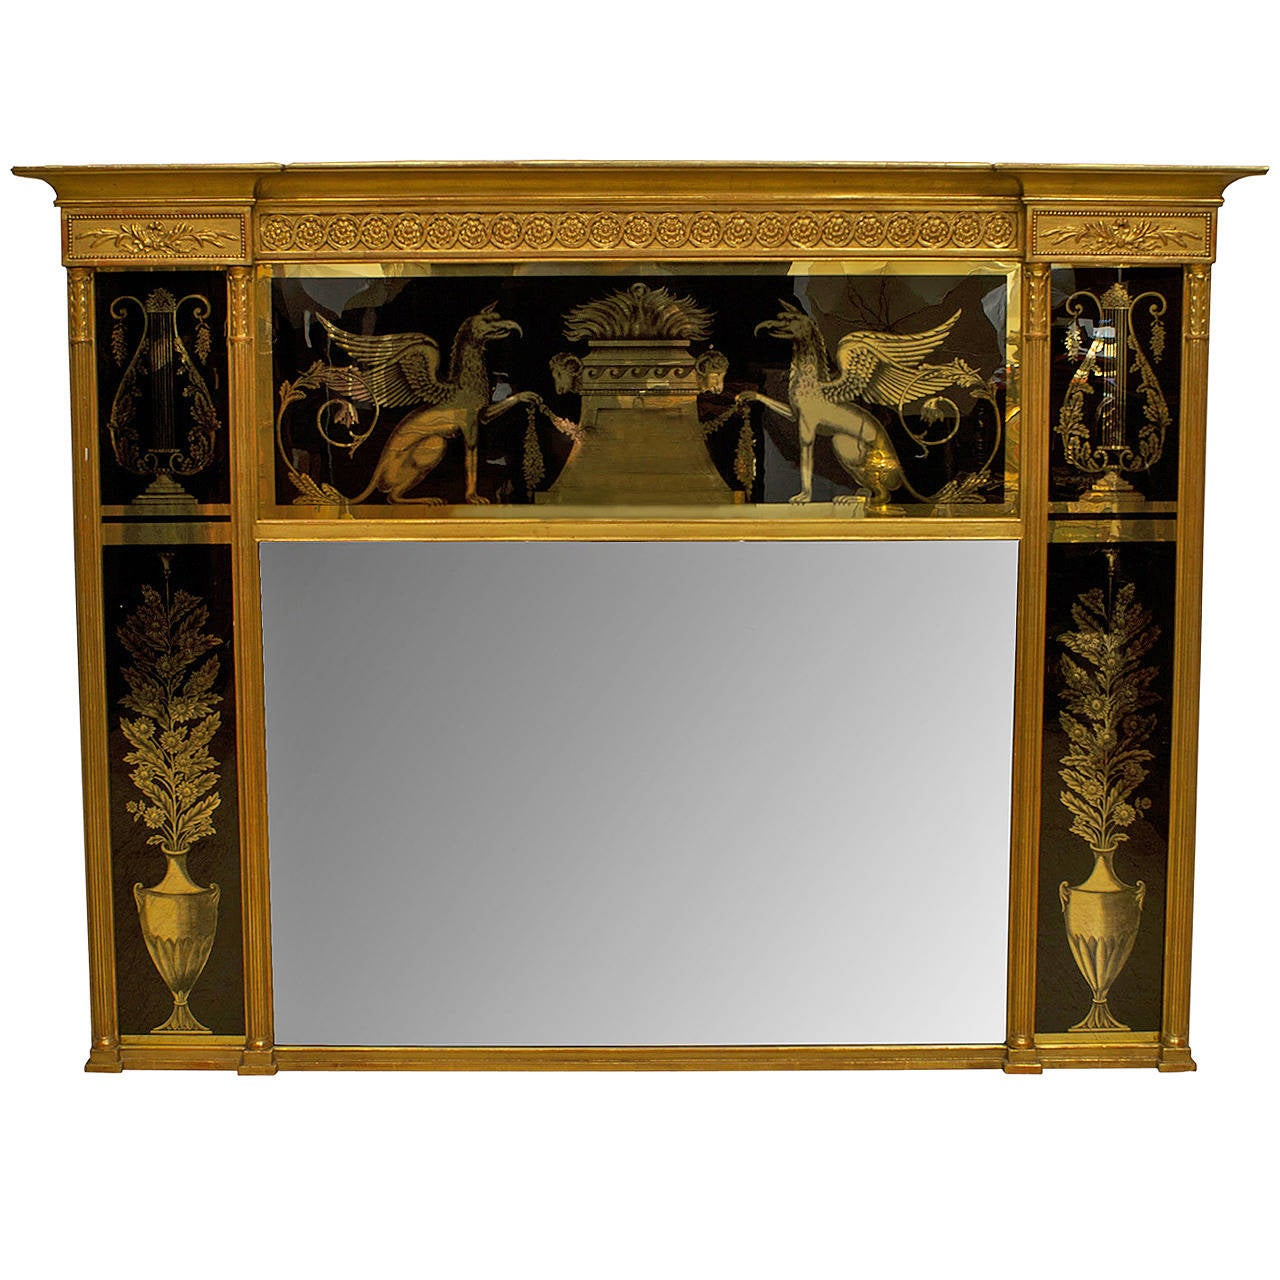 19th Century Italian Neo-classical Wall Mirror Framed in Reverse Painted Glass For Sale